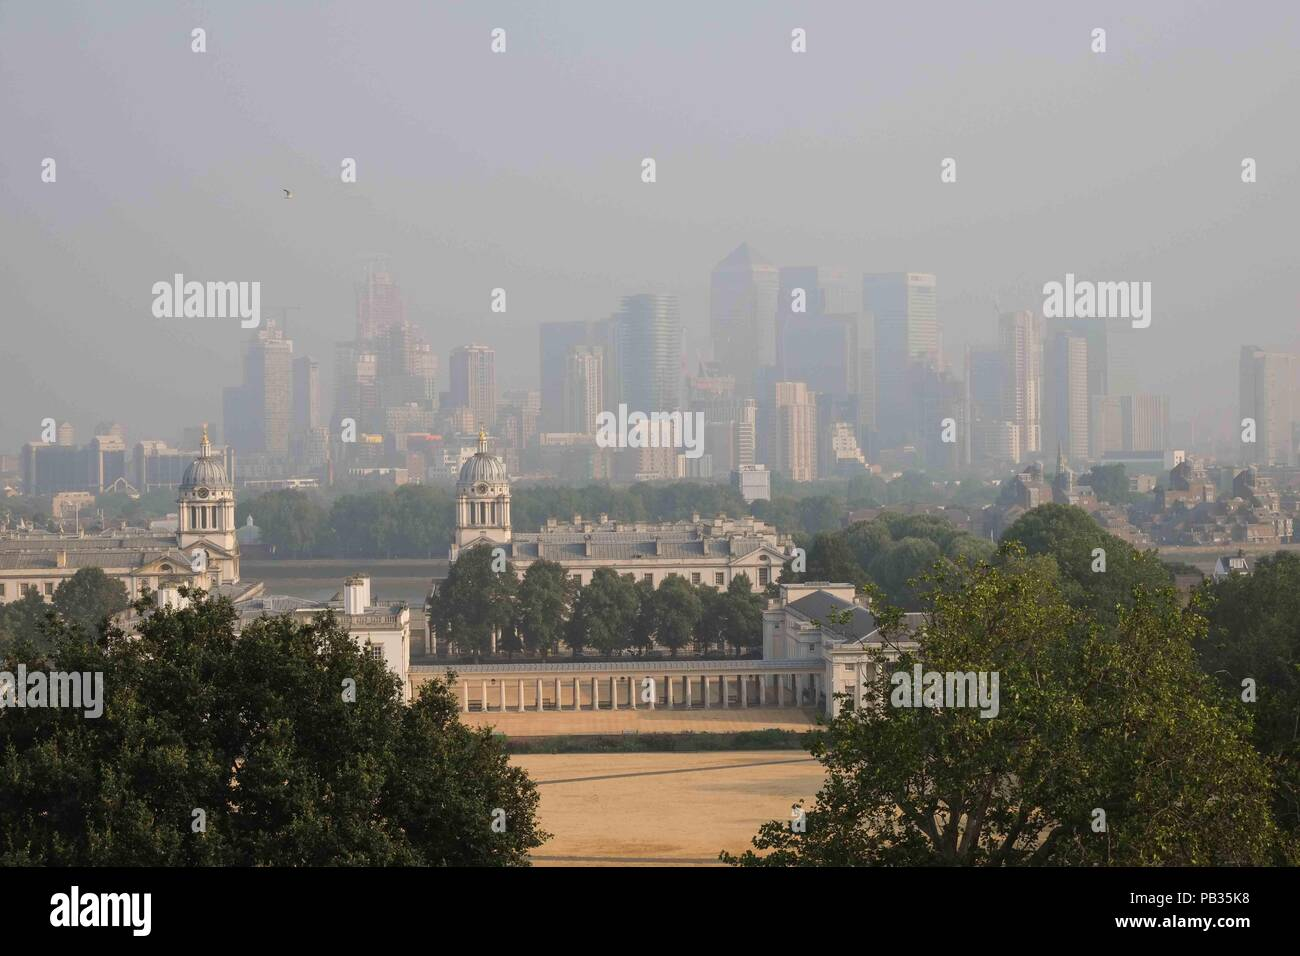 London 26th July 2018:  Early morning smog hangs over Canary Wharf, seen from Greenwich Park  as Mayor Sadiq Khan triggers a high pollution alert for London amid concerns over extremeley high tempertures. The capital is expected to reach a temperture of 36C today. Credit : Claire Doherty/Alamy Live News - Stock Image